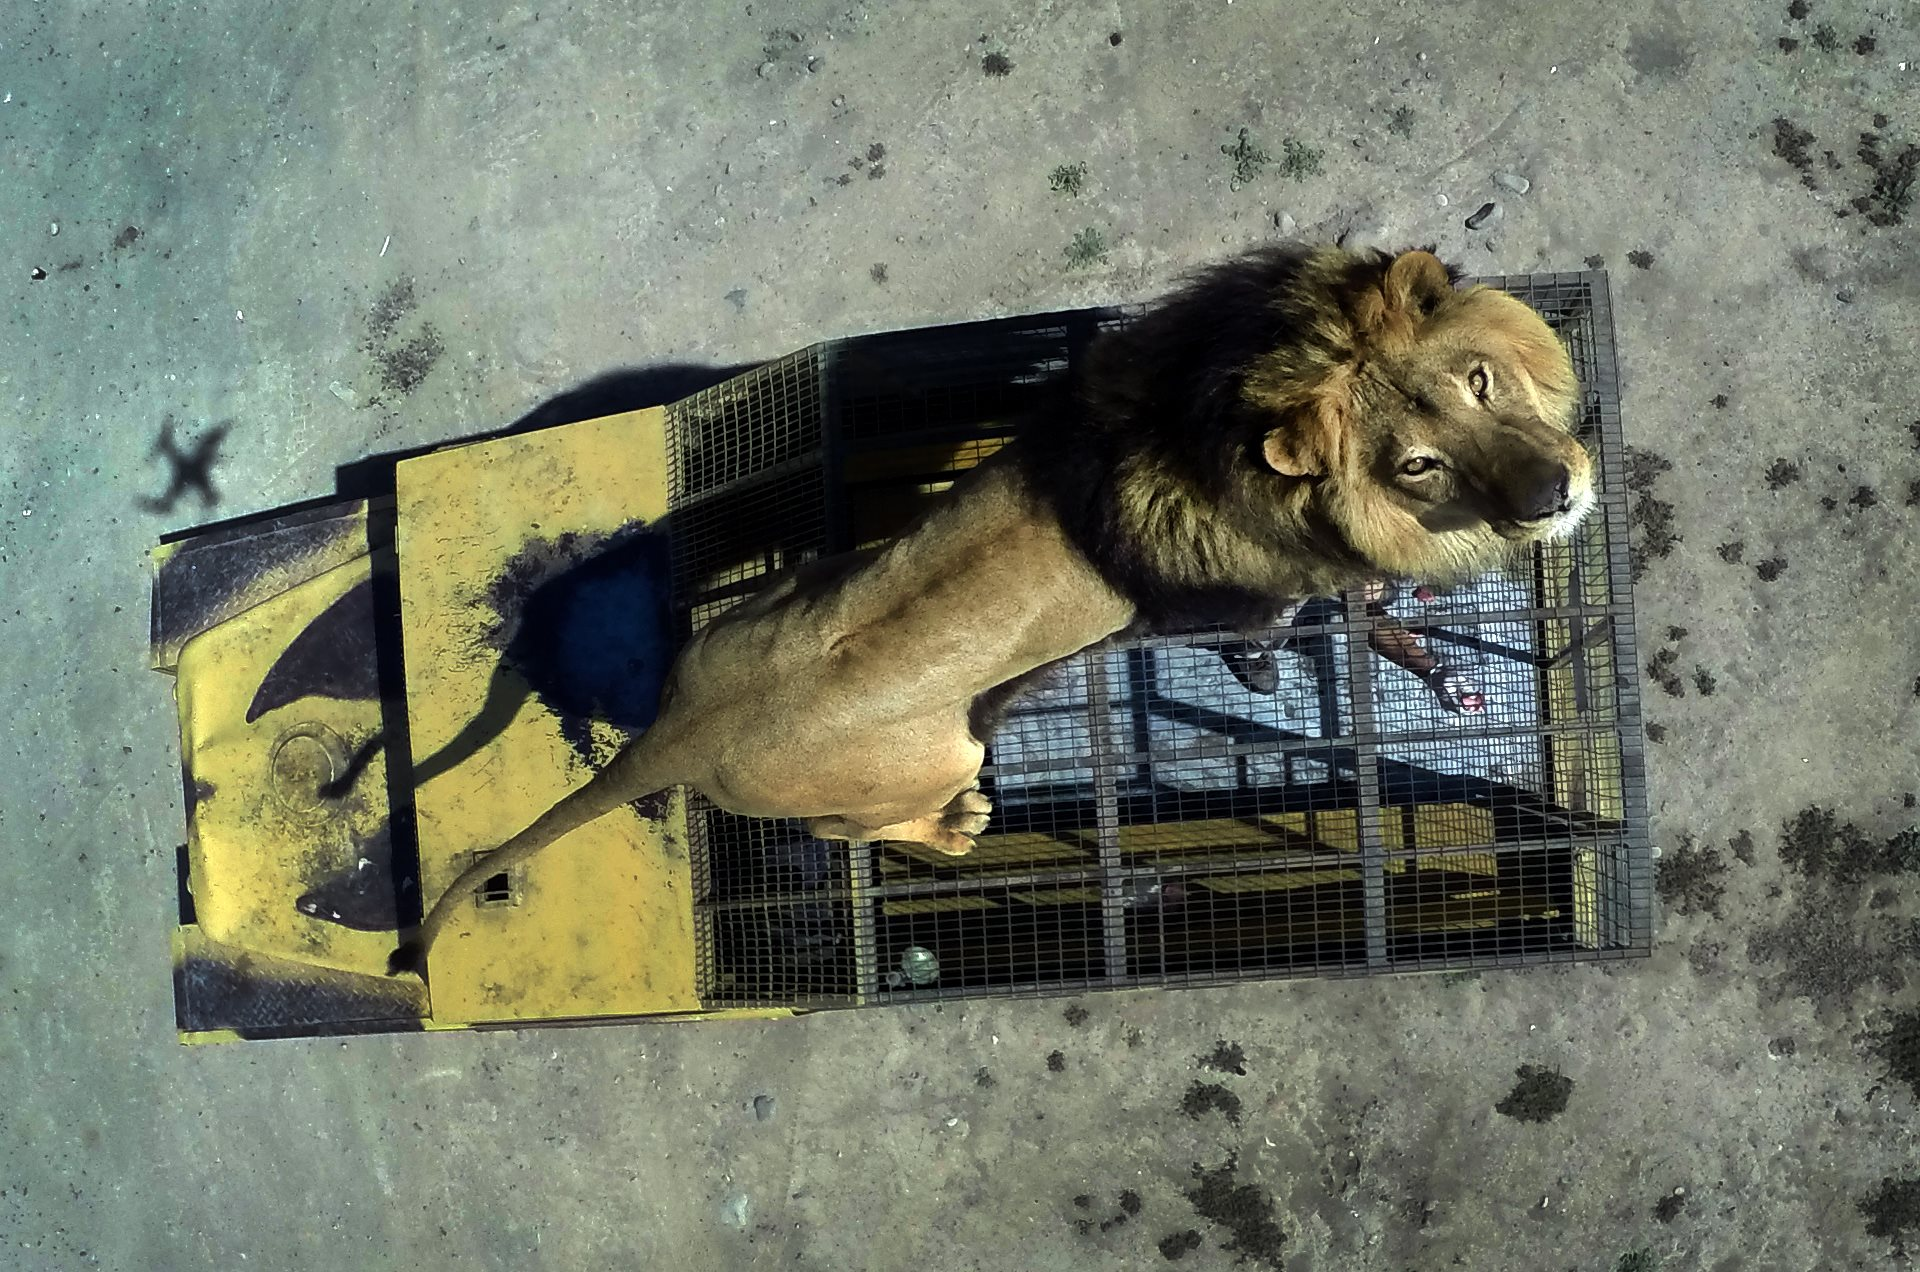 LION PARK IN RANCAGUA